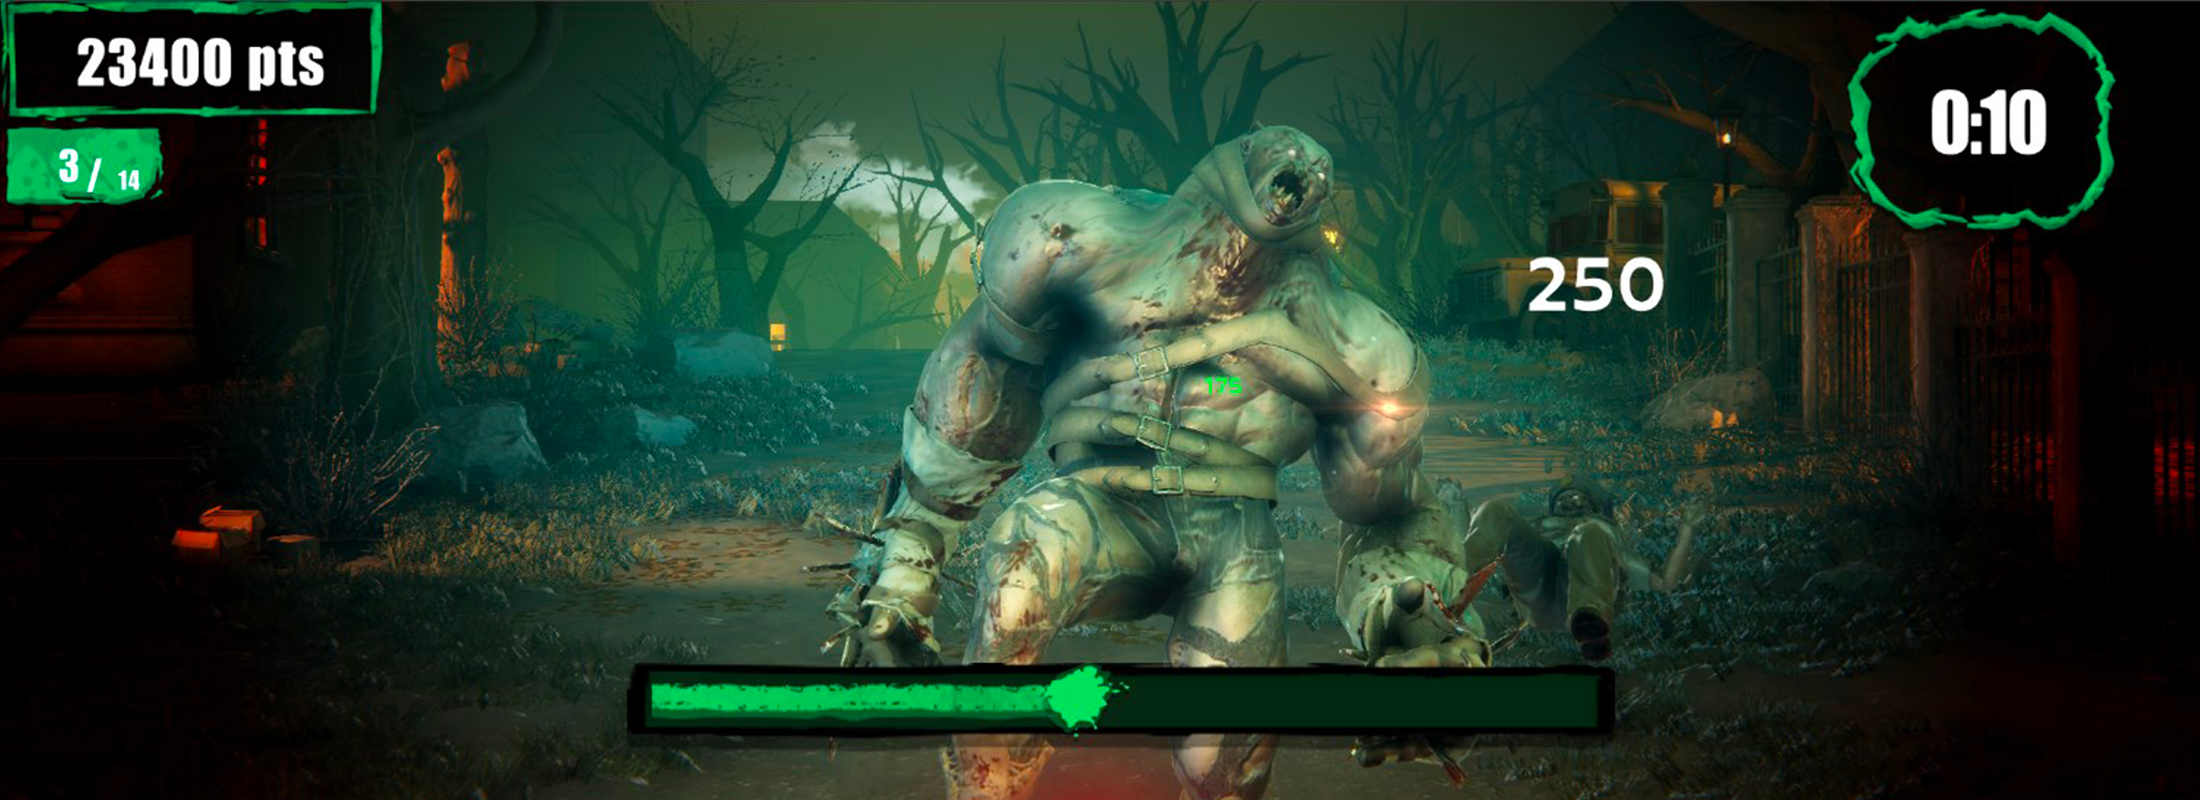 Zombies Gameplay picture boss